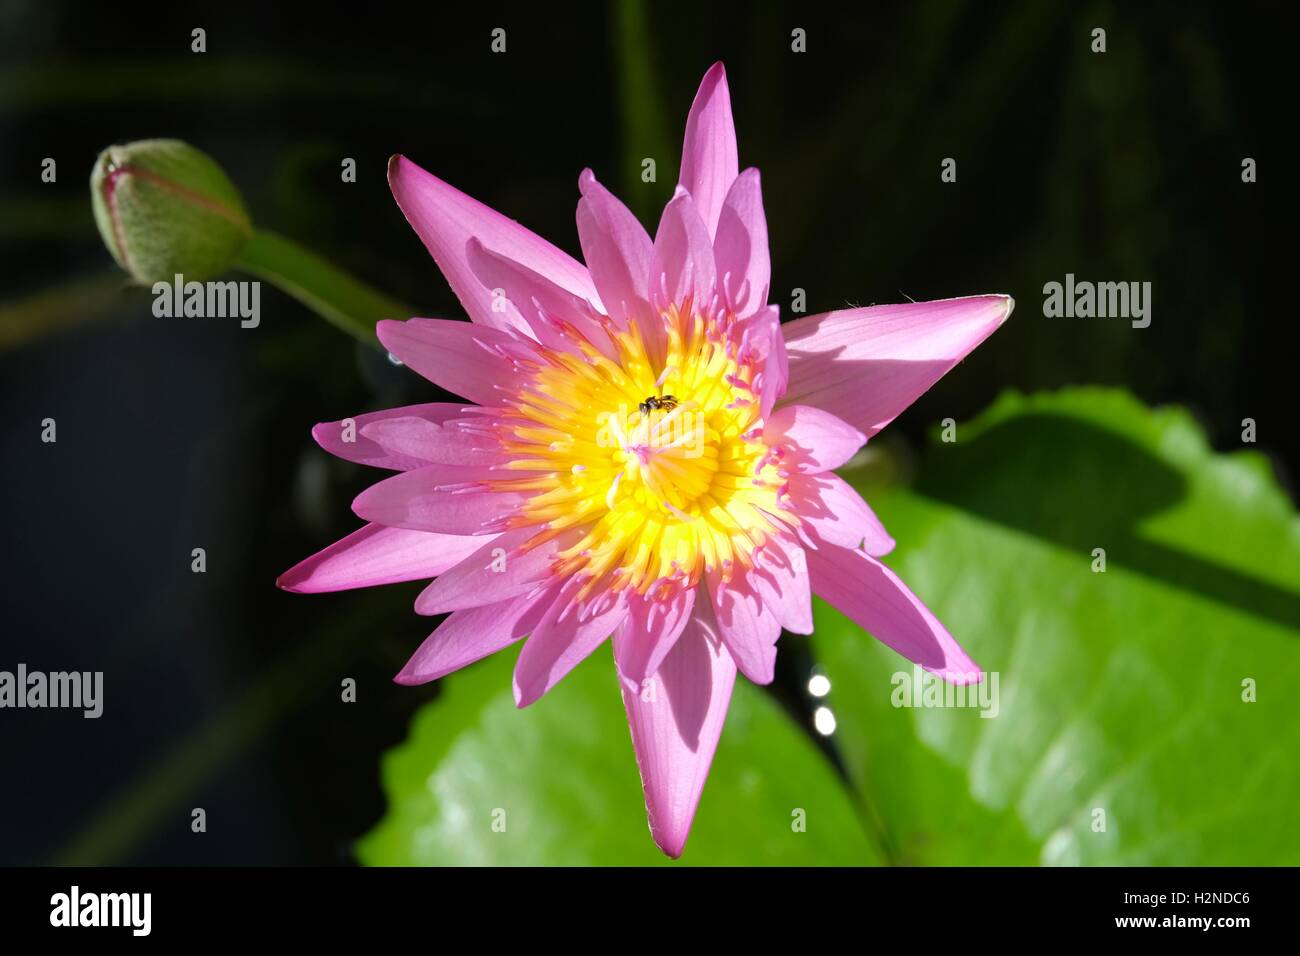 Beautiful lotus flower on the sun with bee at koh samui stock photo beautiful lotus flower on the sun with bee at koh samui izmirmasajfo Images